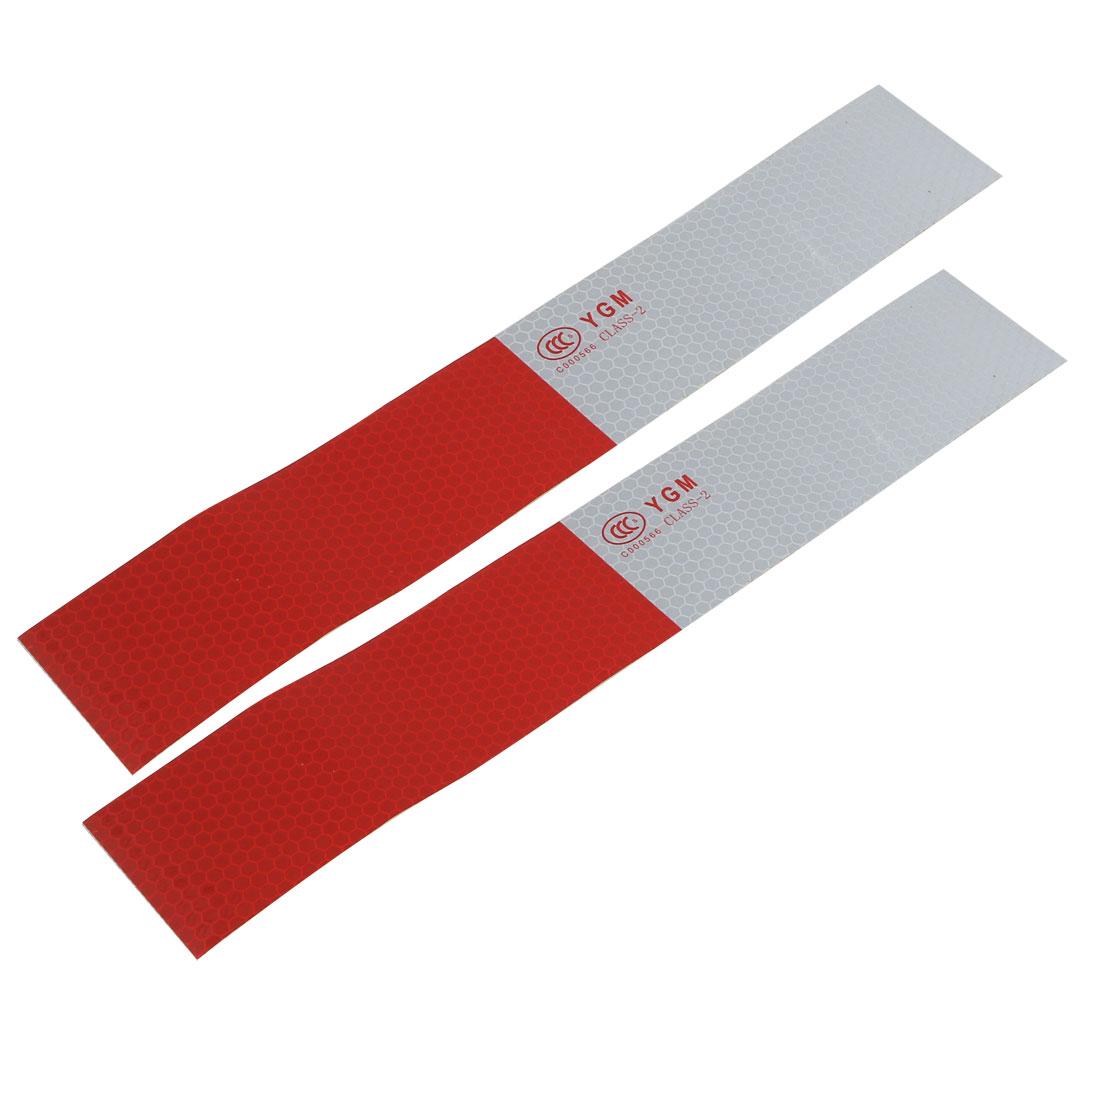 2pcs 5cm x 30cm Honeycomb Single Sided Adhesive Reflective Warning Tape Red Gray